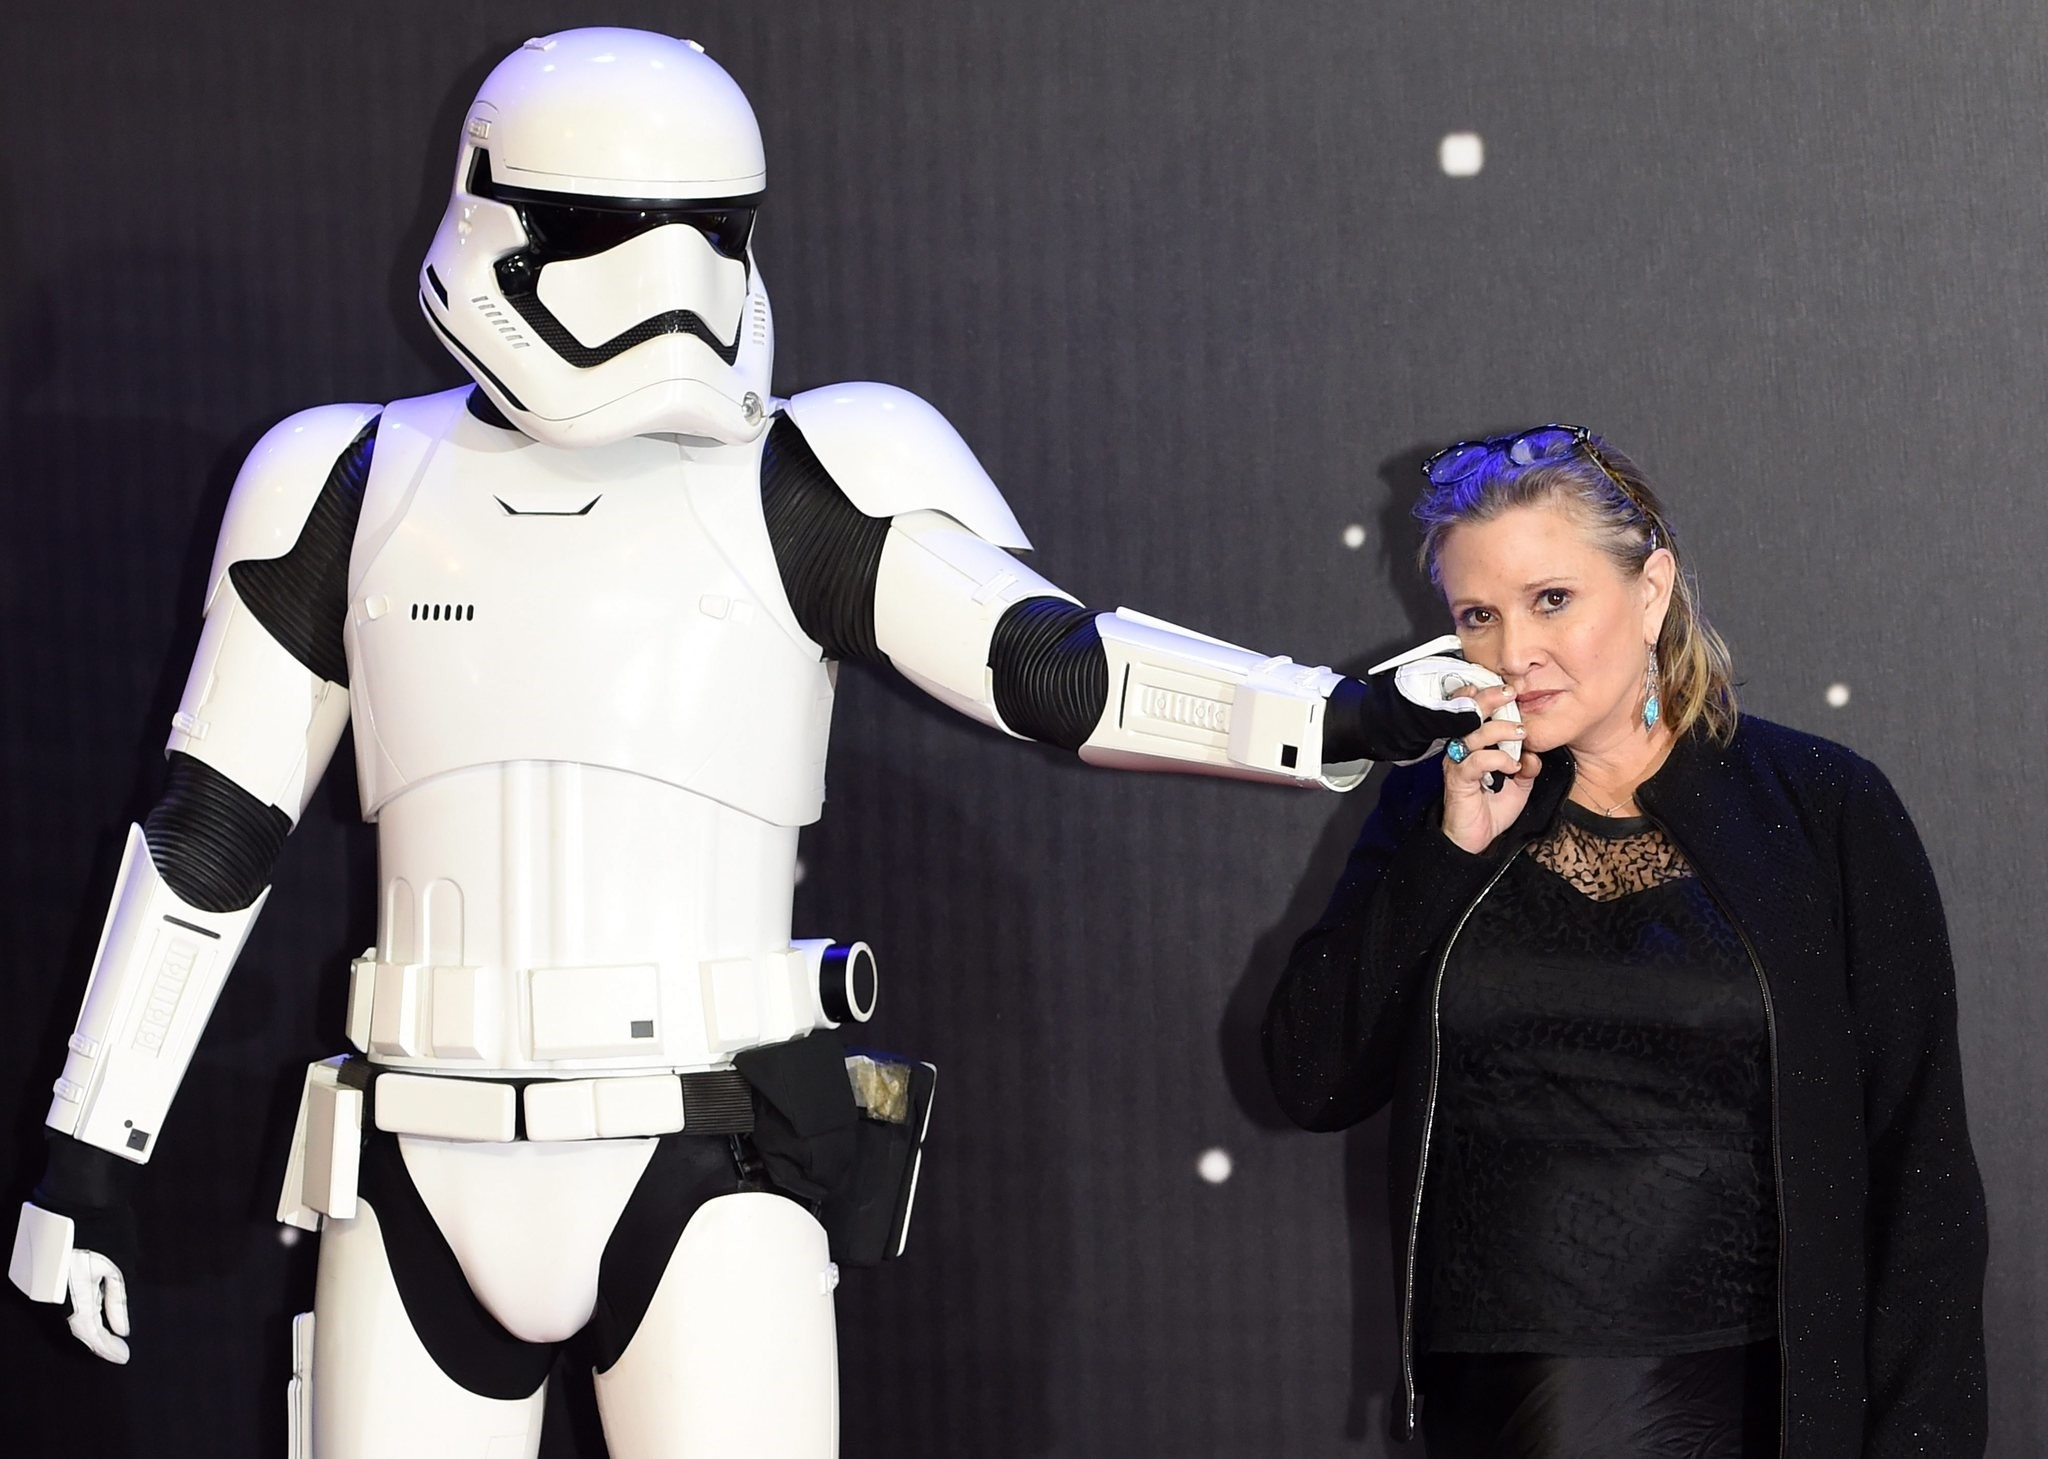 A  file picture dated 16 Dec 2015 shows cast member Carrie Fisher posing next to a Stormtrooper film character at the European premiere of 'Star Wars'. (EPA Photo)